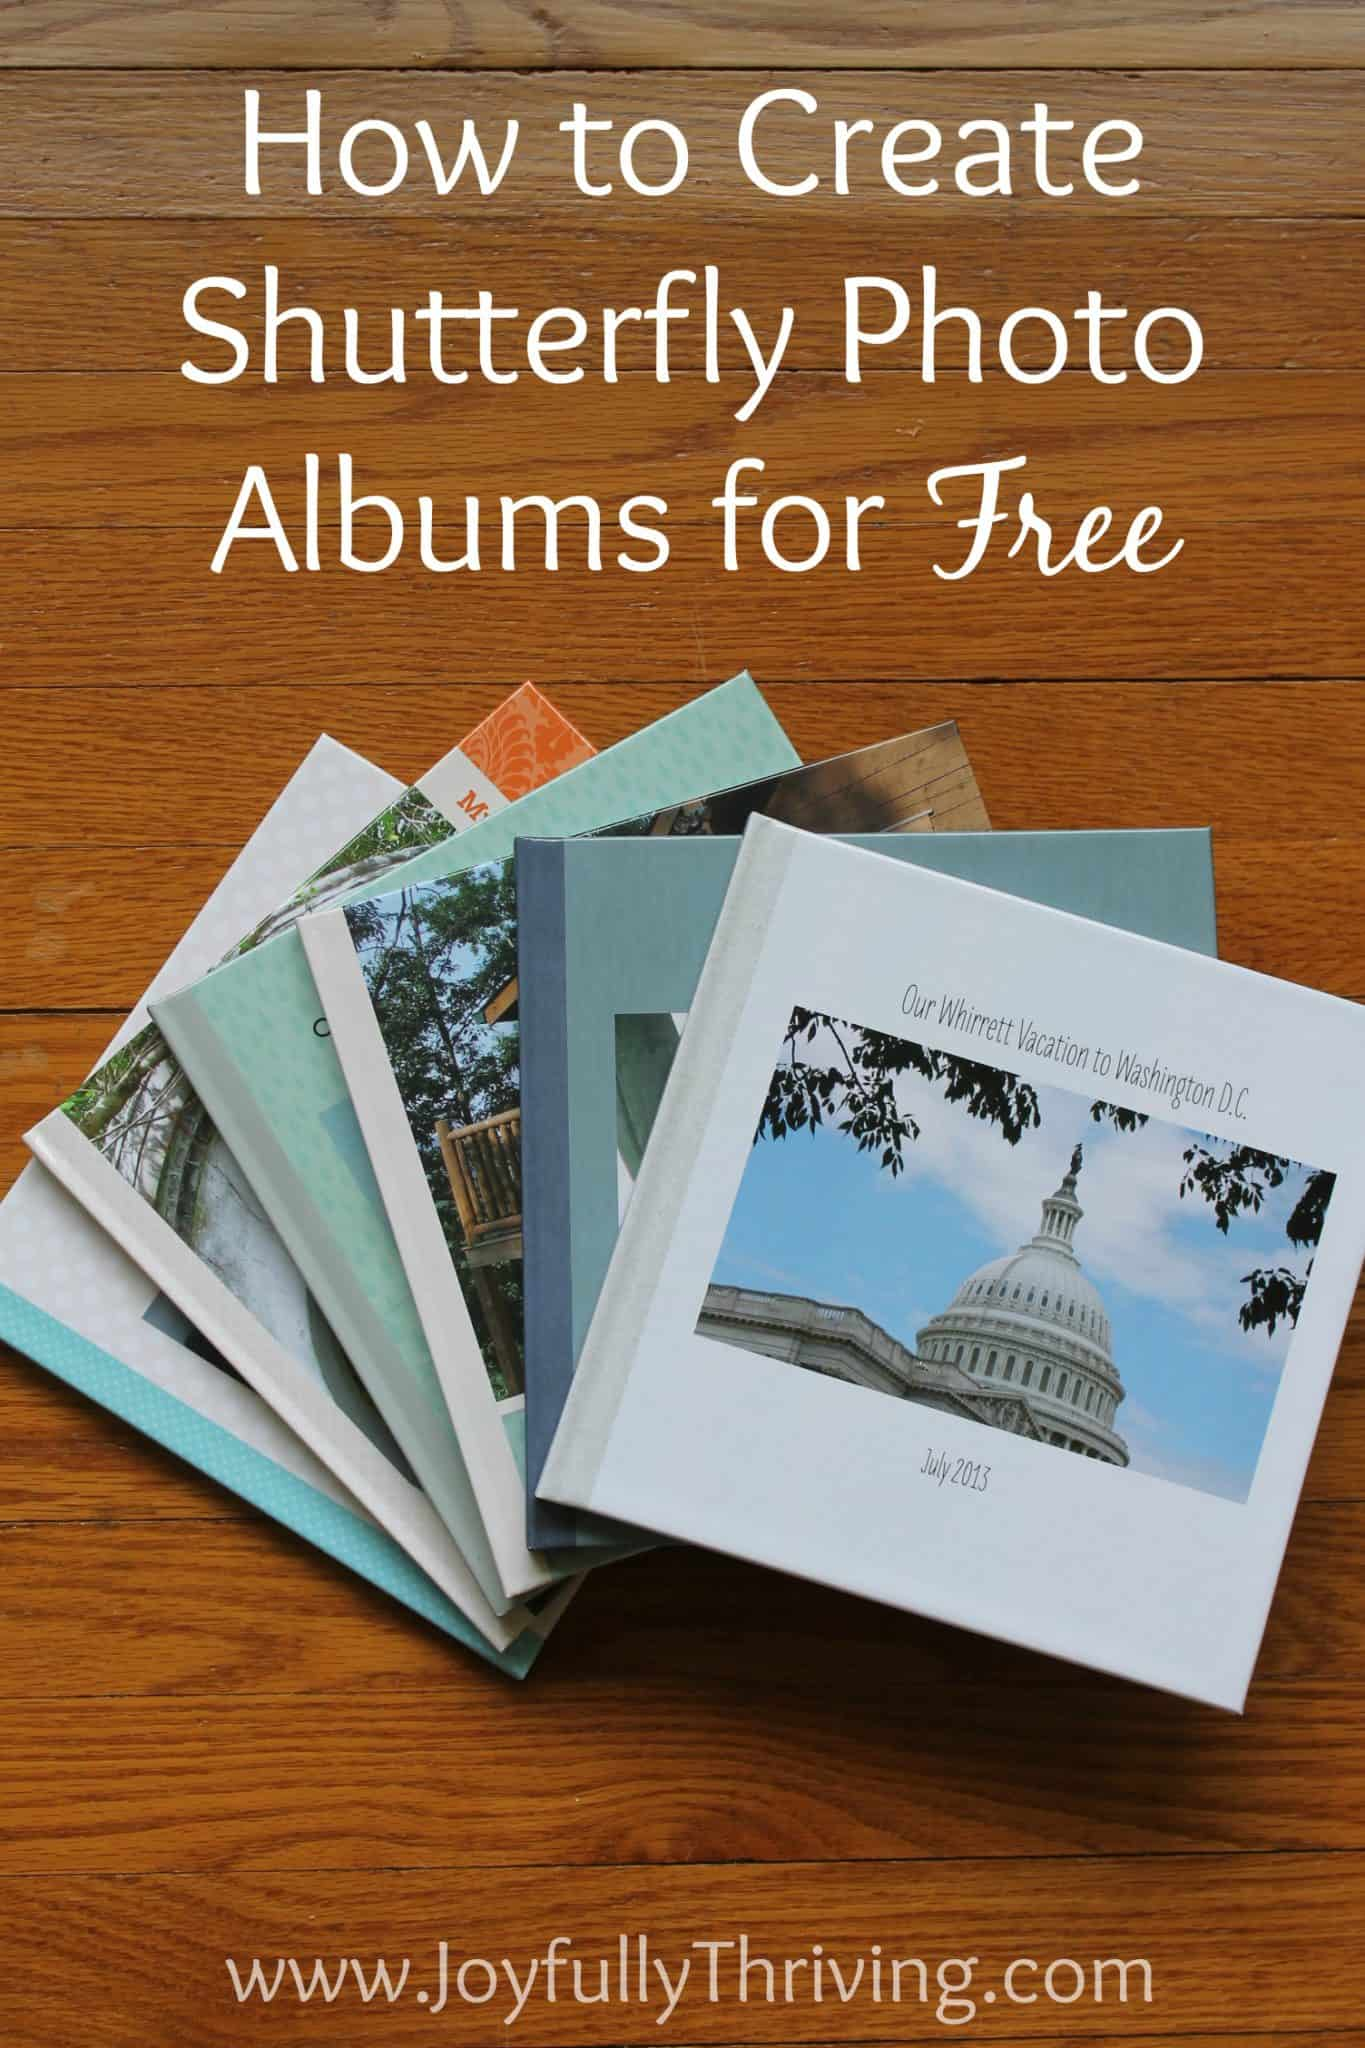 6 Truly Easy Ways to Get Free Shutterfly Photo Books